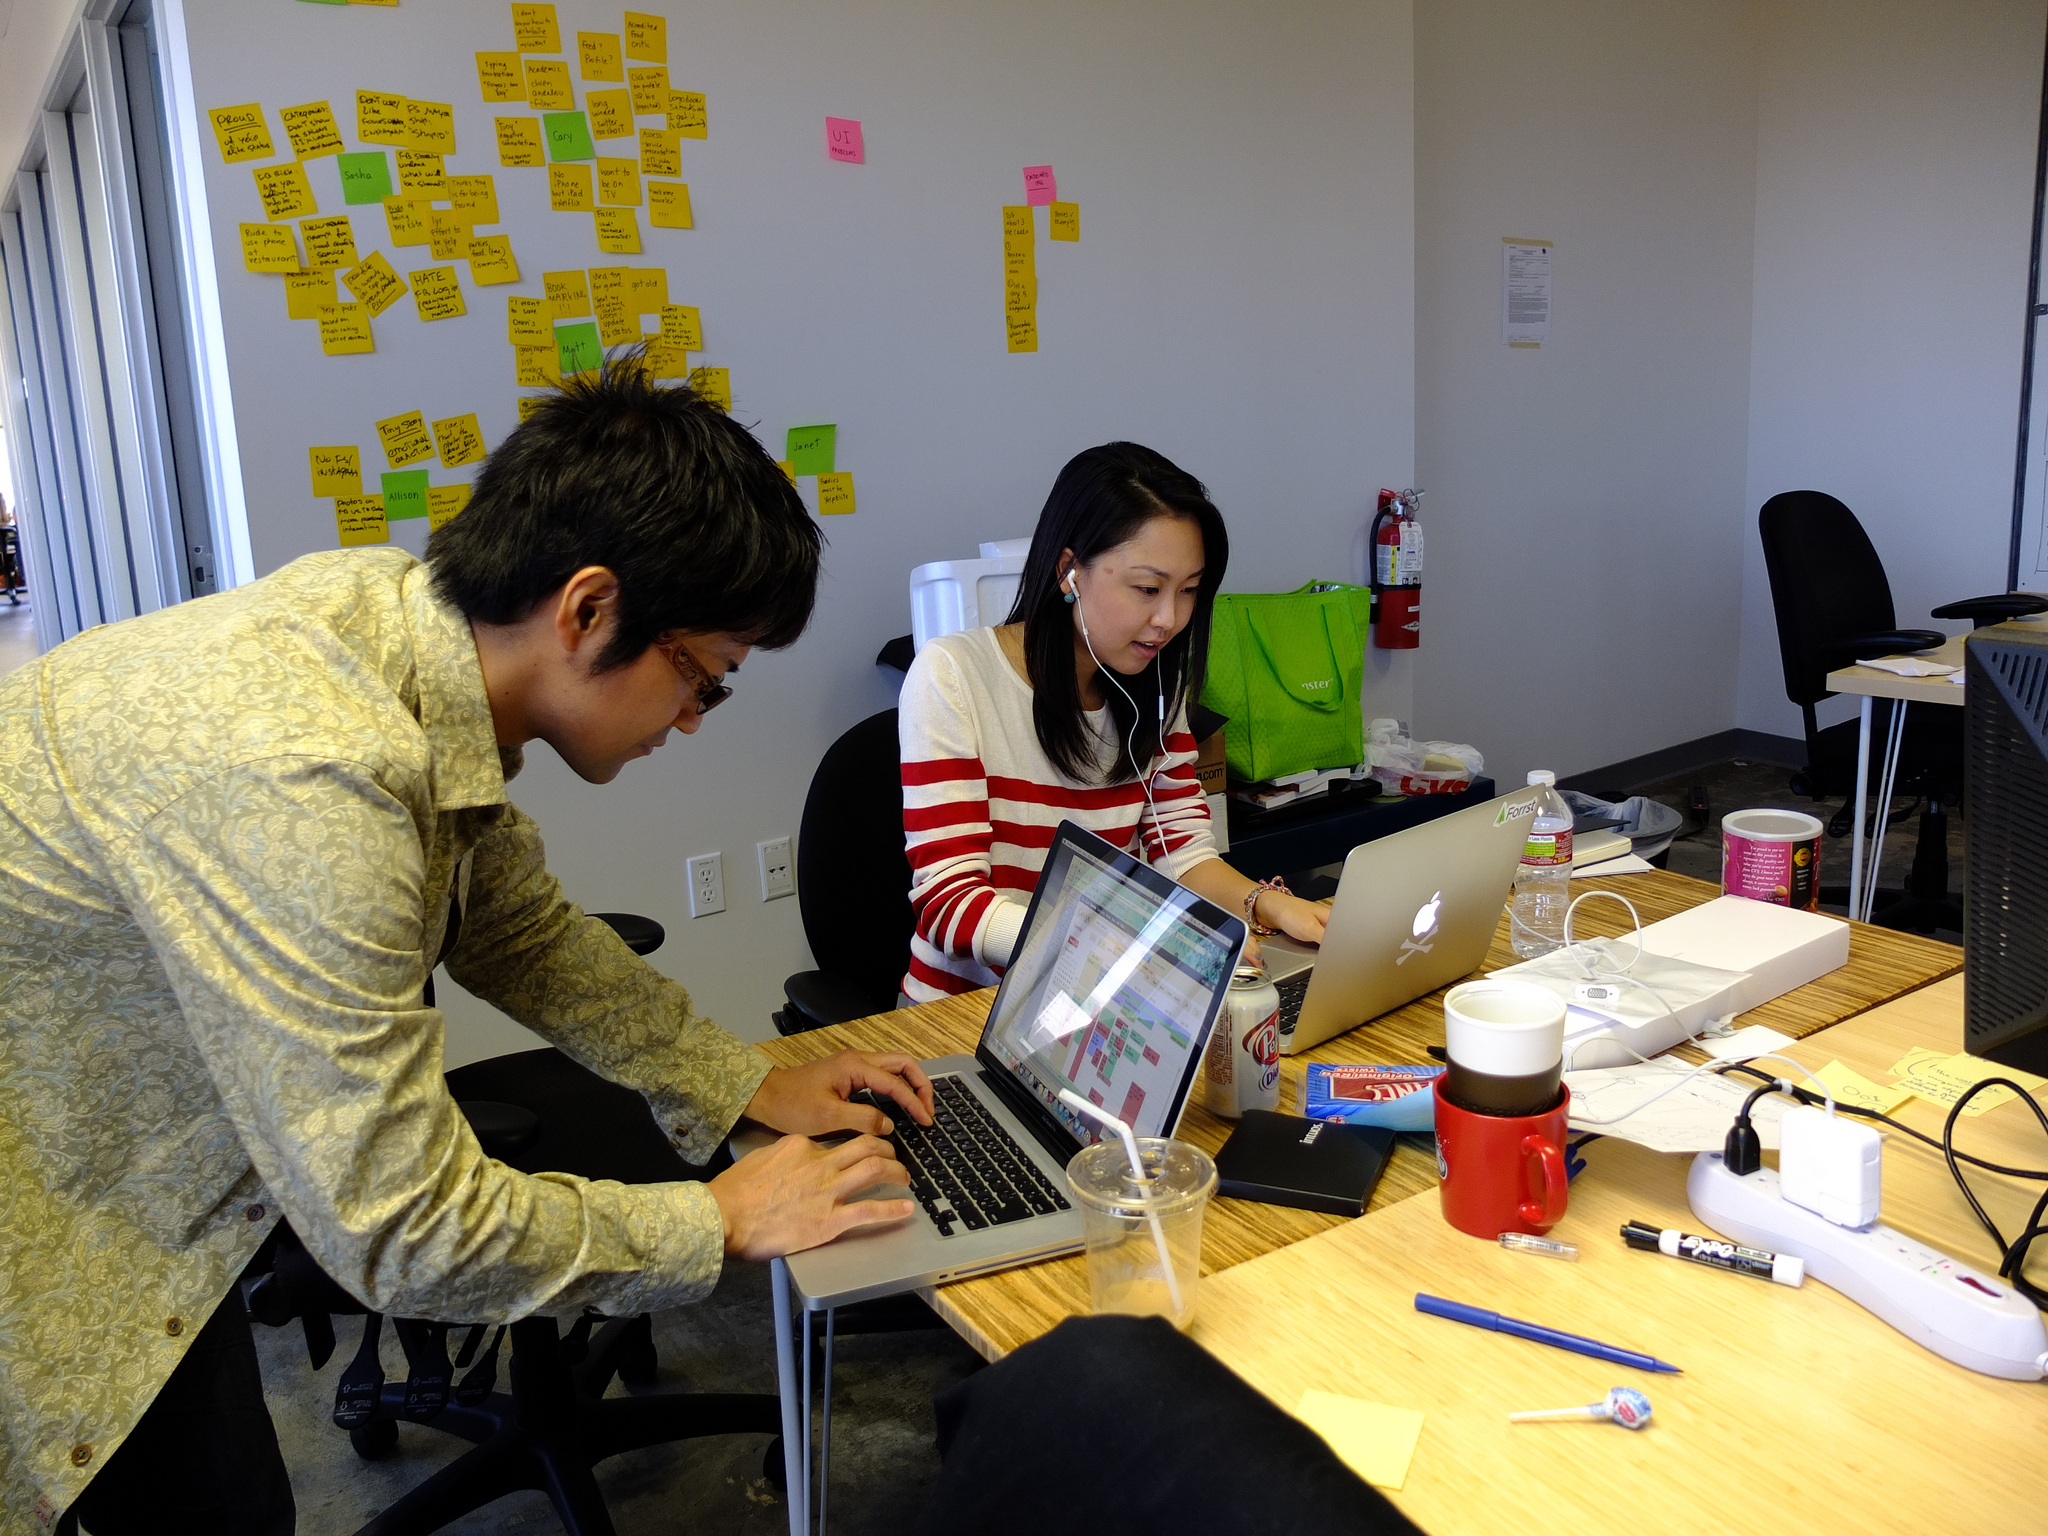 500 Startups Team Members Hard at Work